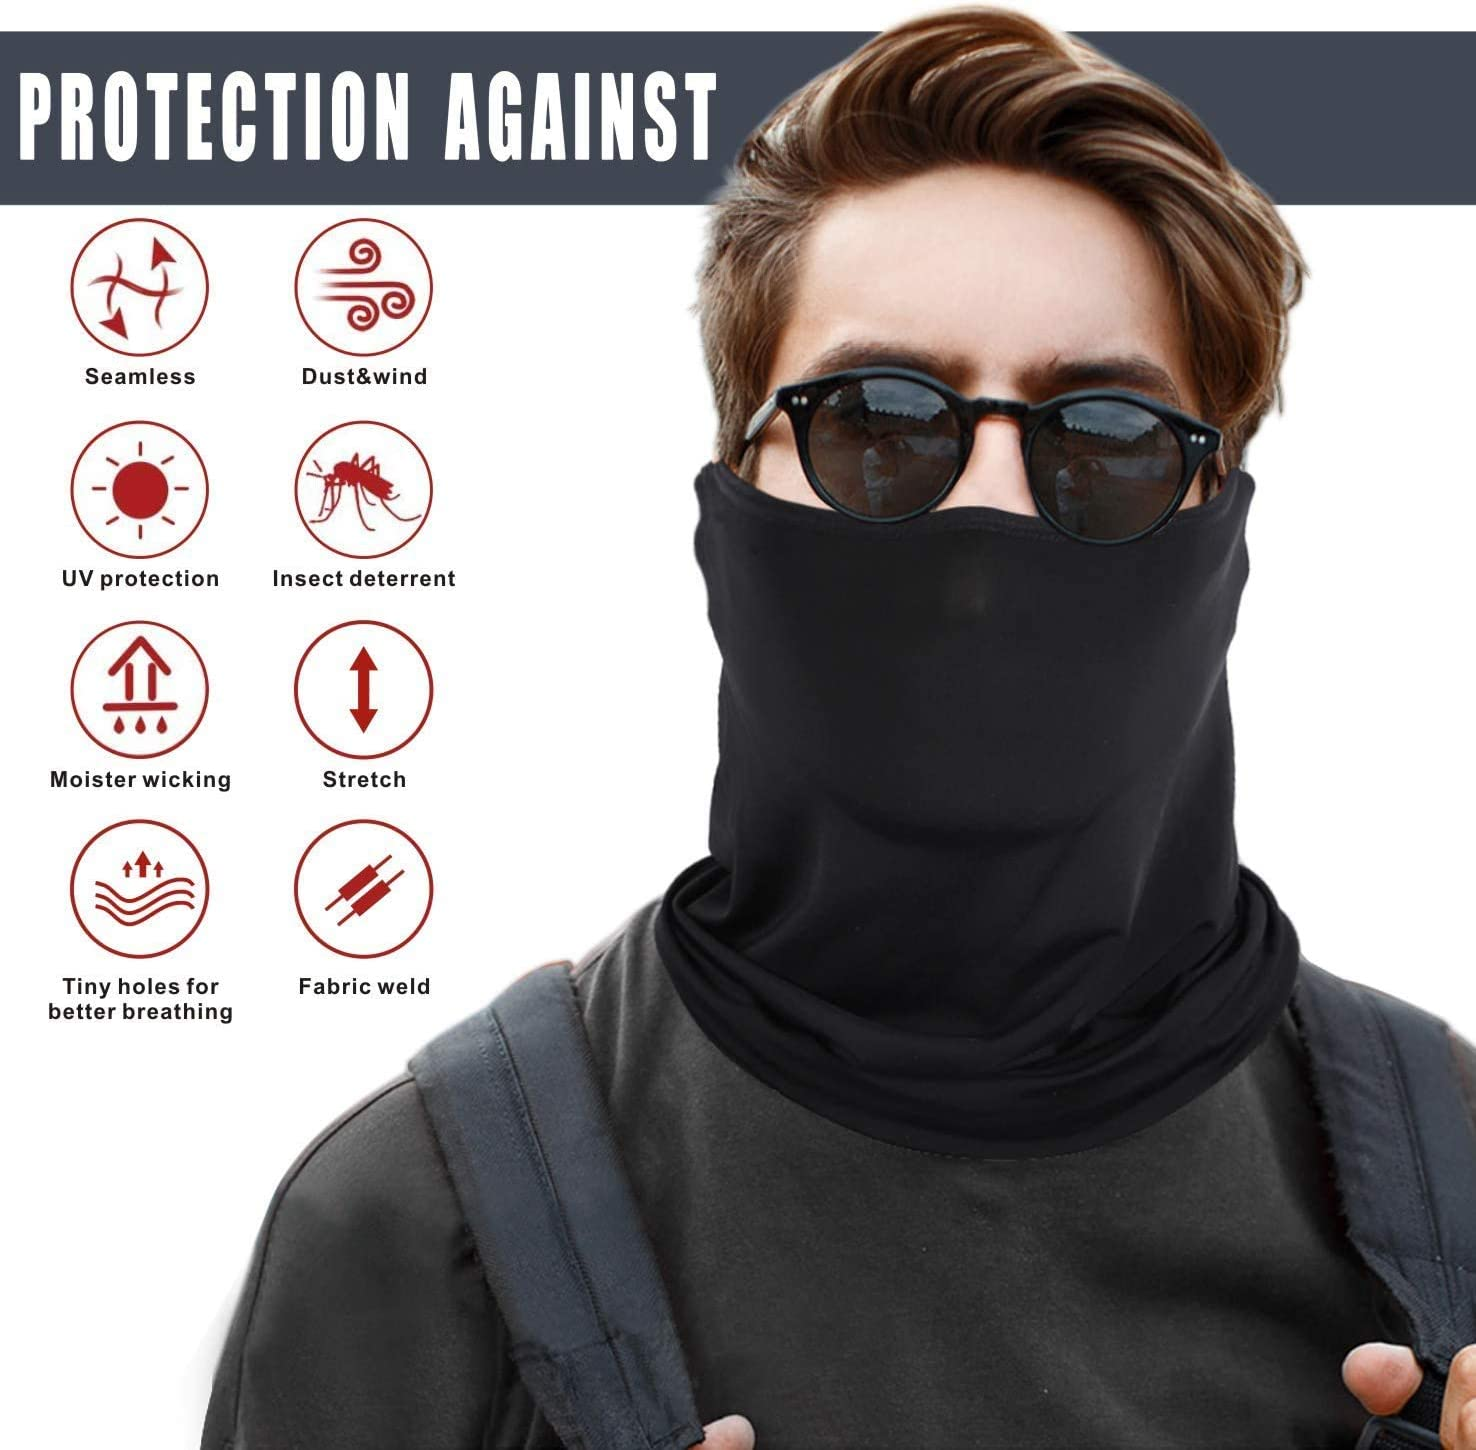 XRTJ Face Mask Scarf Cycling Outdoor Motorcycle Neck Gaiter Bandana UV Protection Breathable Neck Tube Balaclava for Cycling Hiking Motorbikes Running Ski Snowboard BK+BL+GY+GN